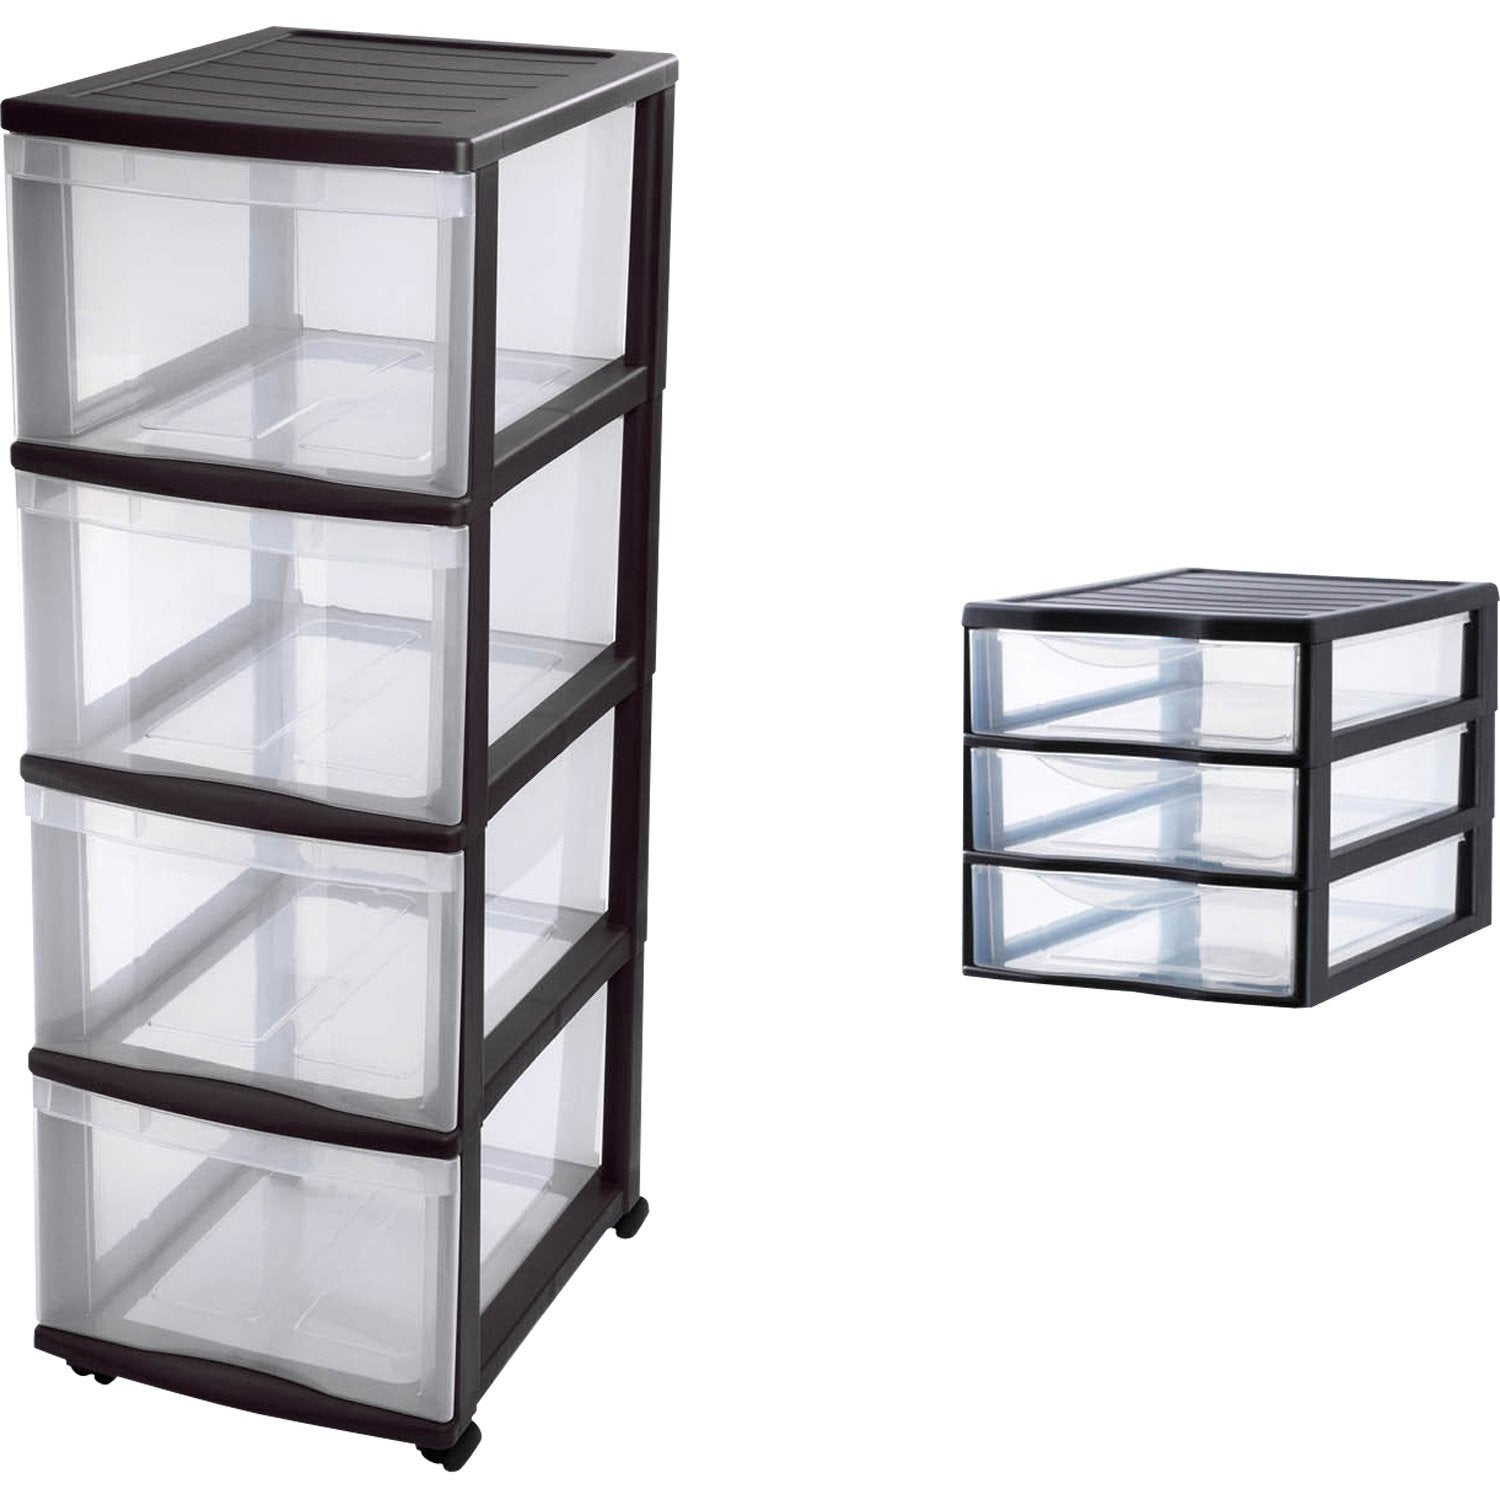 tour de rangement optimo plastique x x. Black Bedroom Furniture Sets. Home Design Ideas